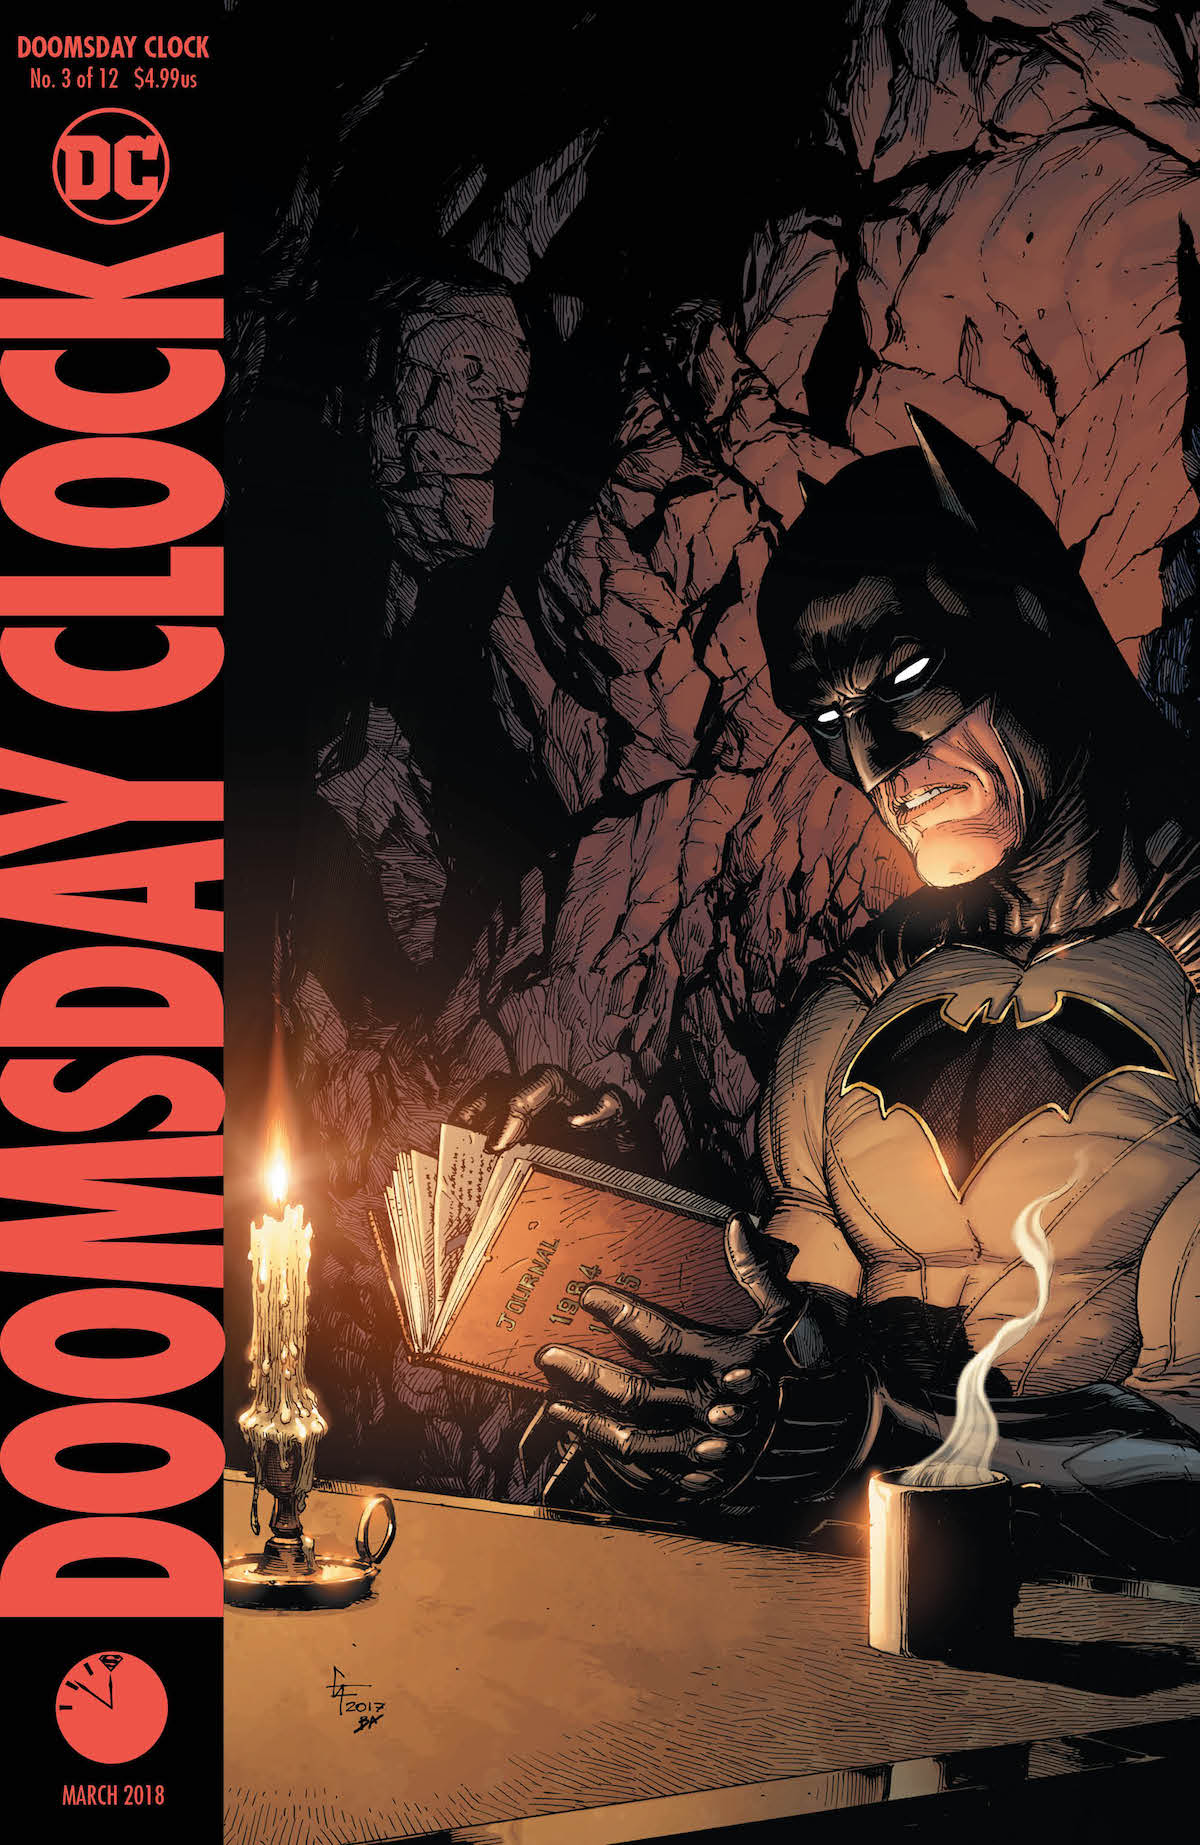 Doomsday Clock #3 variant cover